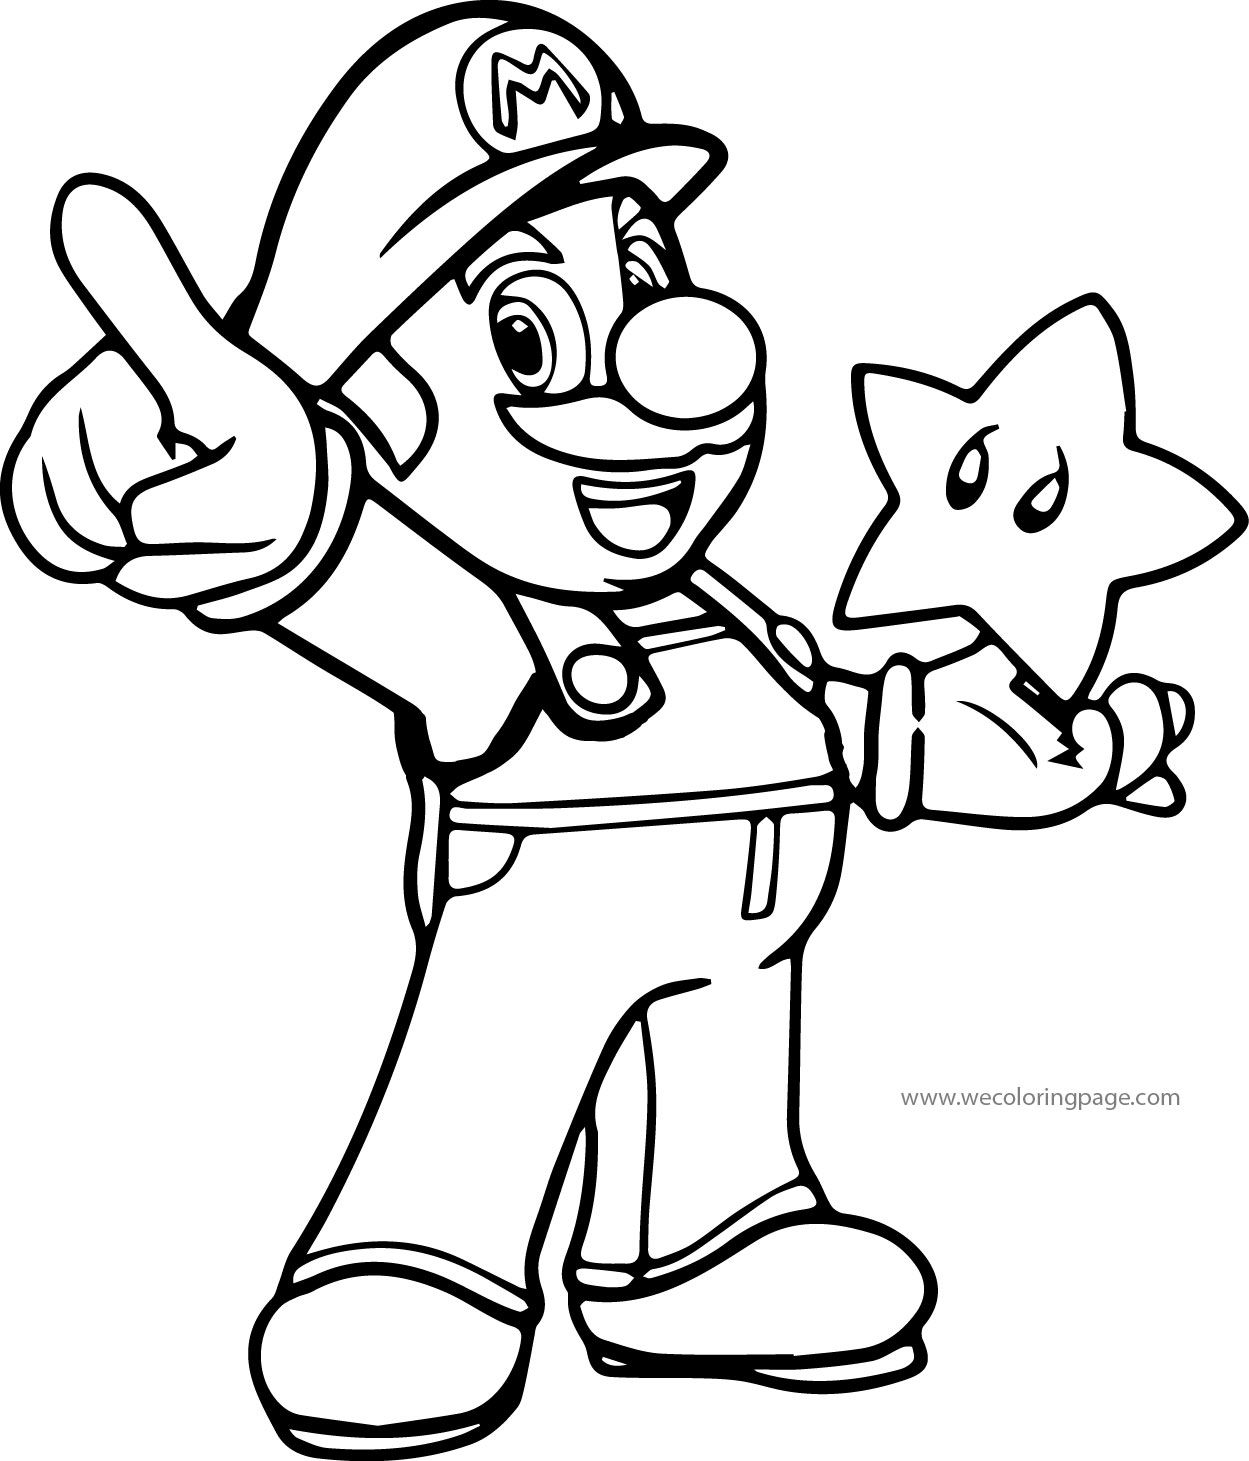 Awesome Super Mario Coloring Page Super Mario Coloring Pages